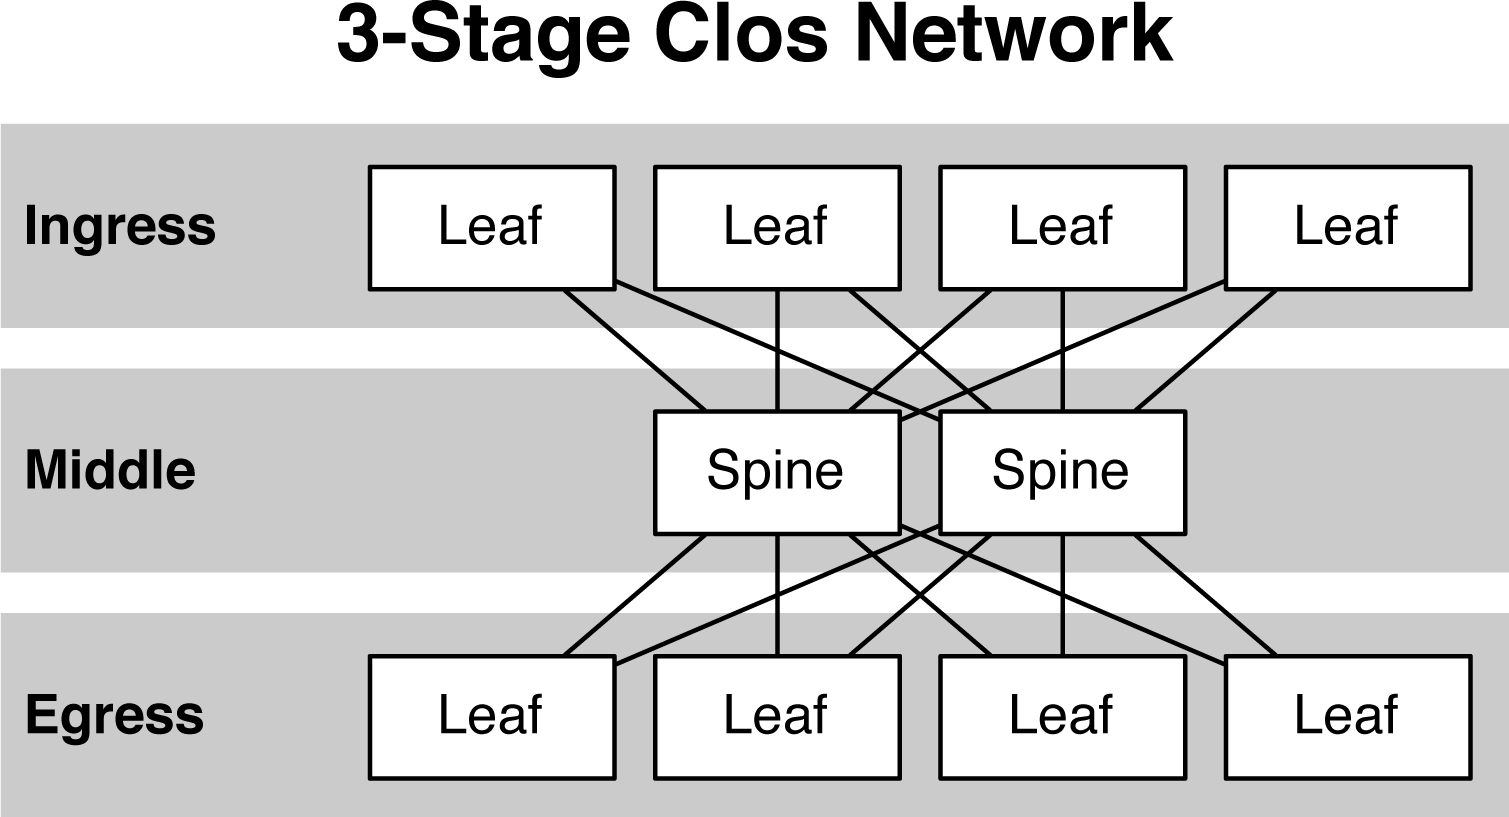 Architecture of Clos network